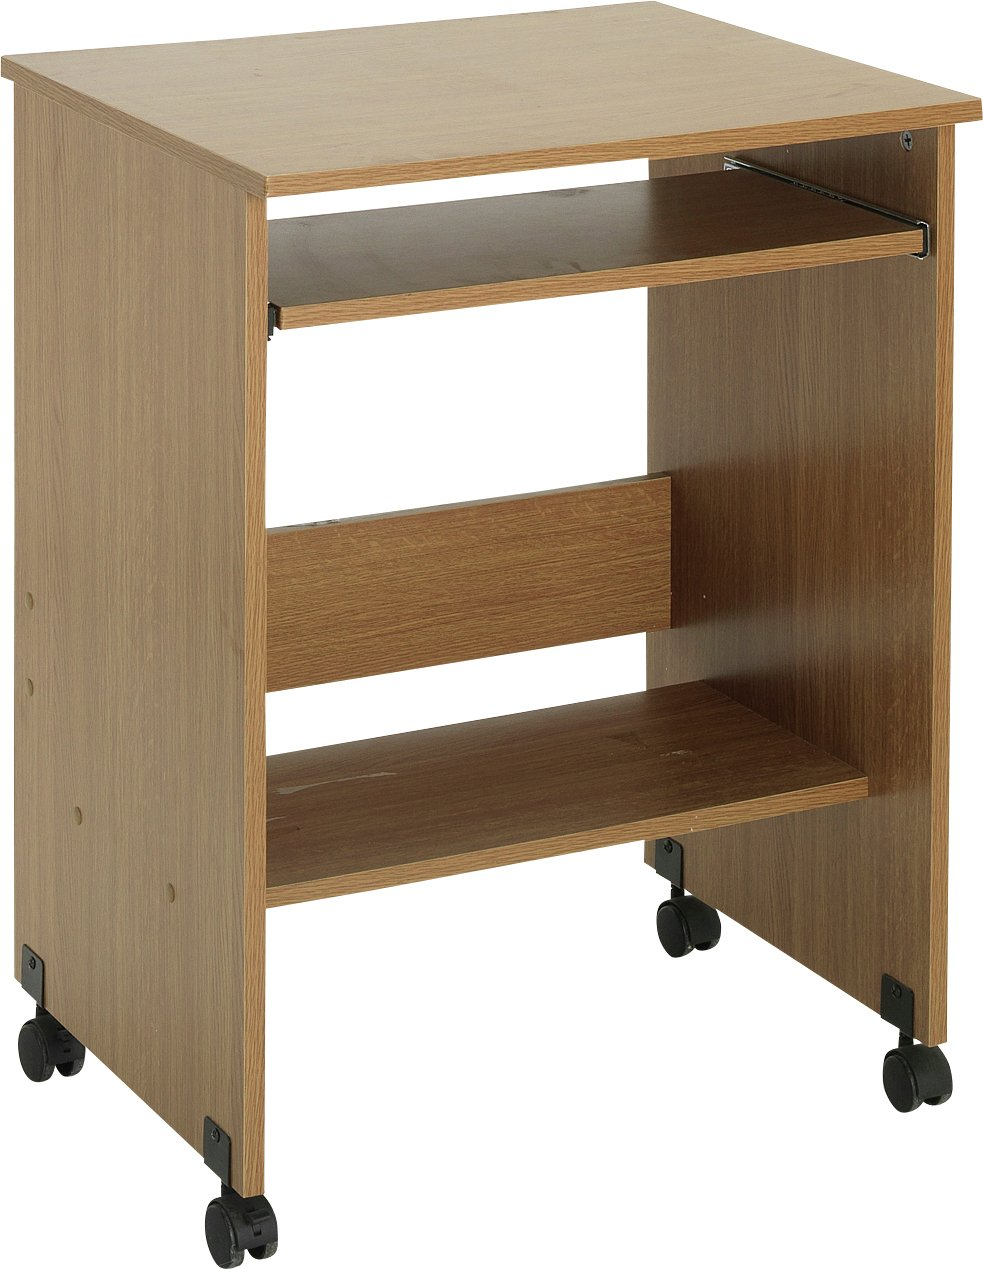 sale on functional pc trolley oak effect specials now. Black Bedroom Furniture Sets. Home Design Ideas